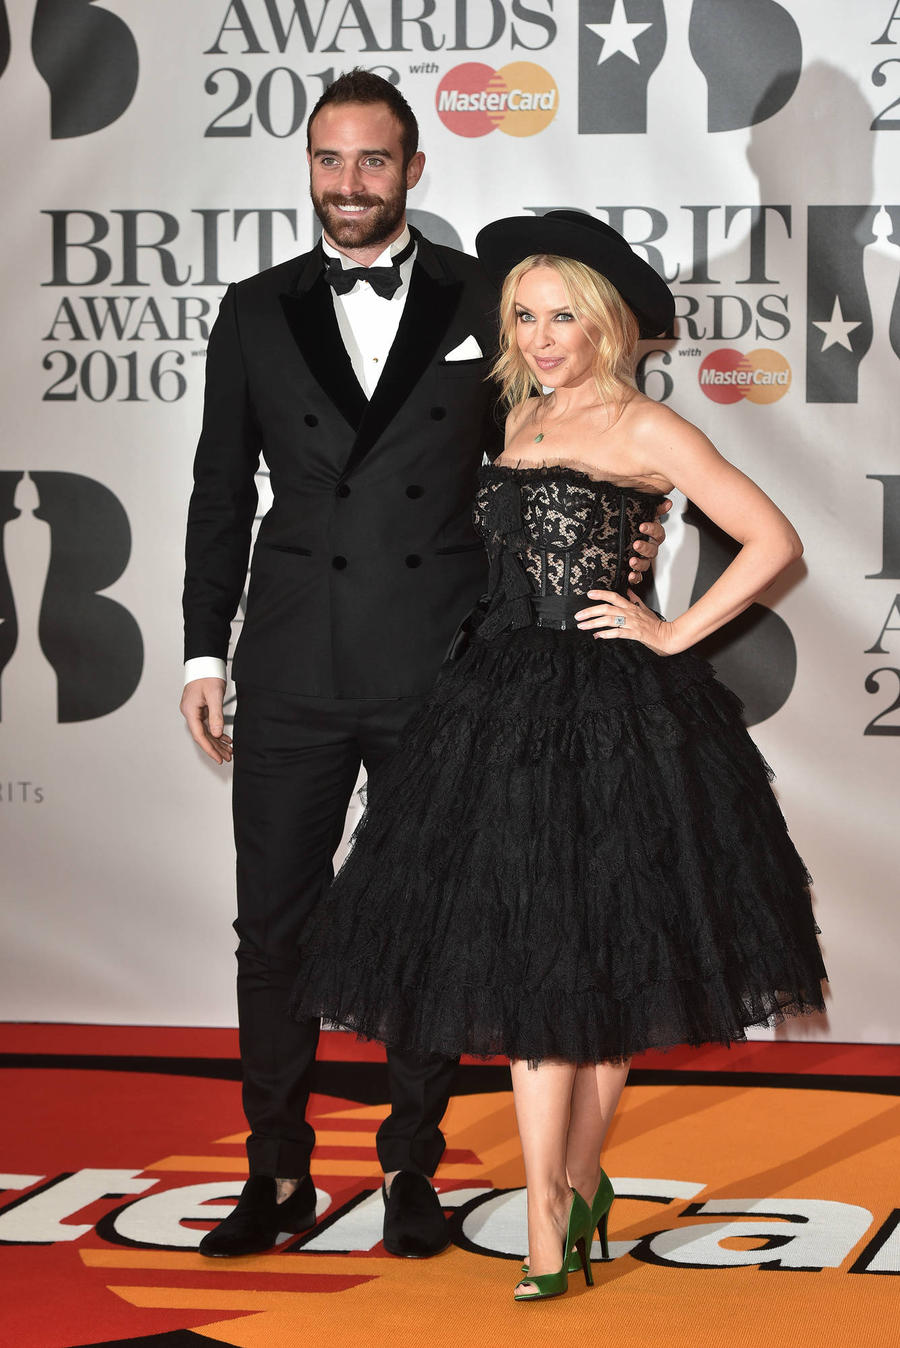 Kylie Minogue's Fiance Running London Marathon For Breast Cancer Charity